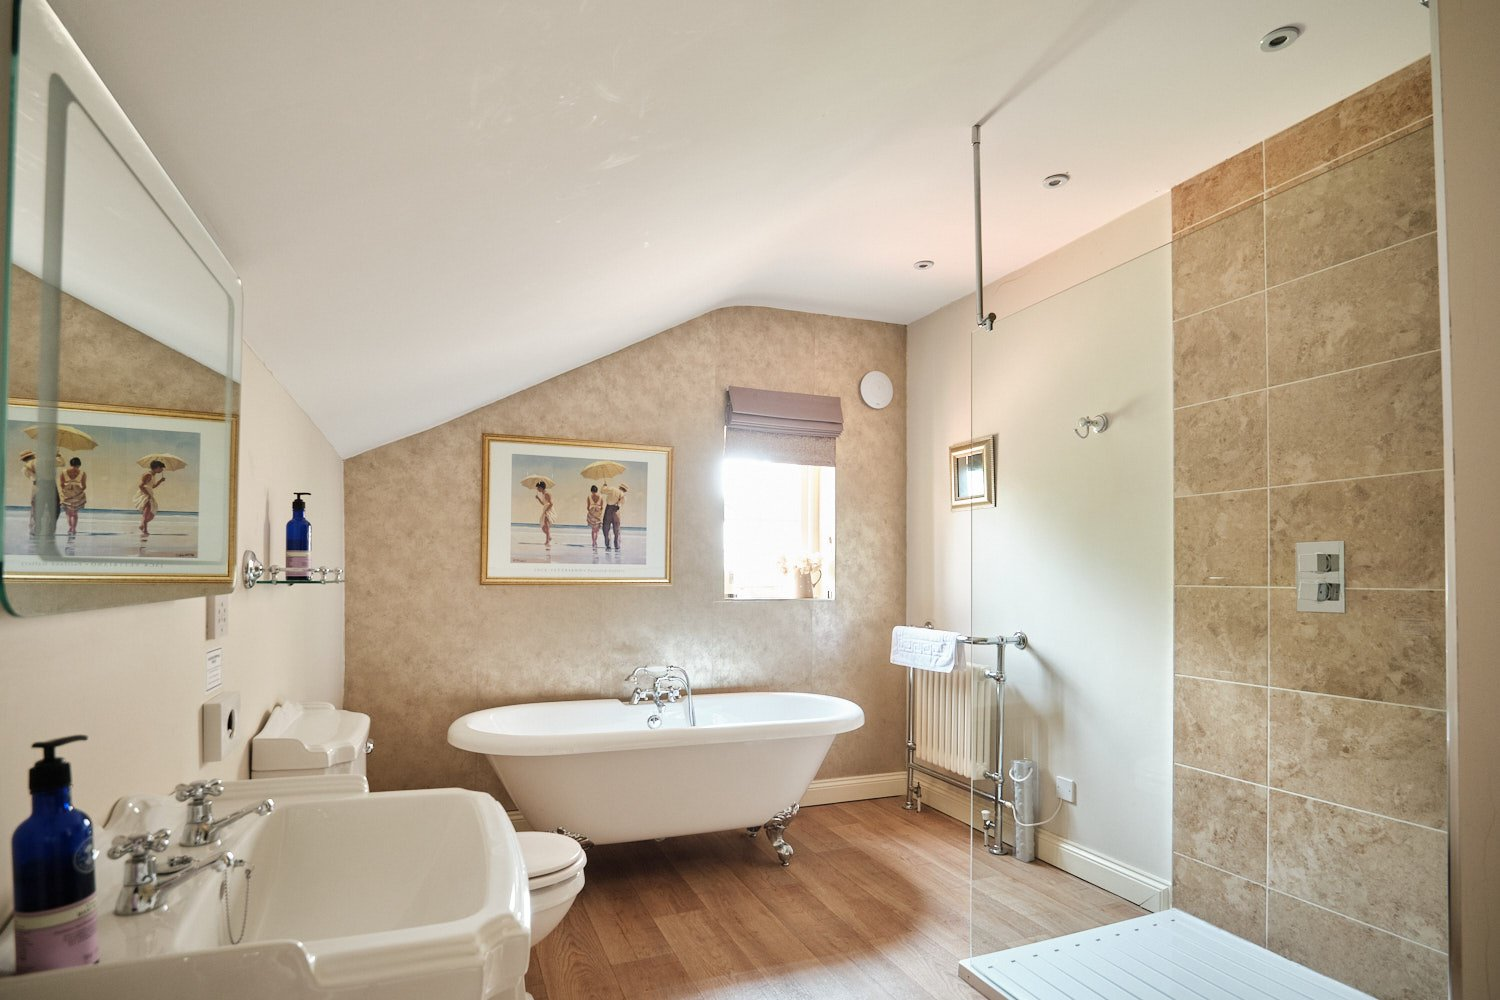 Percy The Pheasant Bathroom suite at The Elm Tree